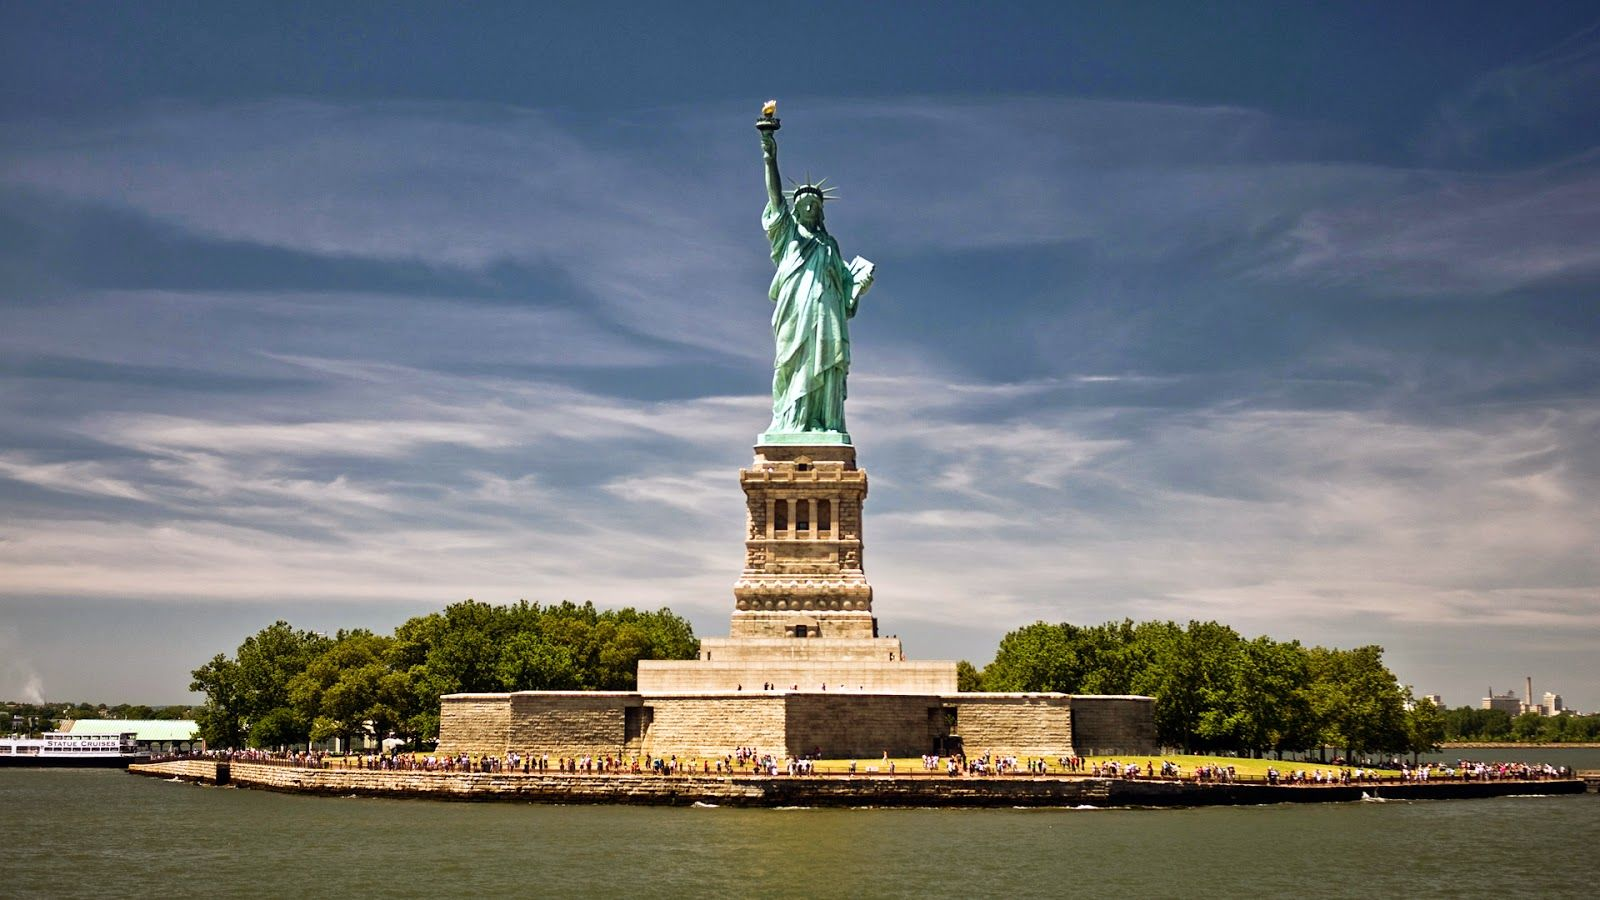 Statue of Liberty and Liberty Island full of tourists